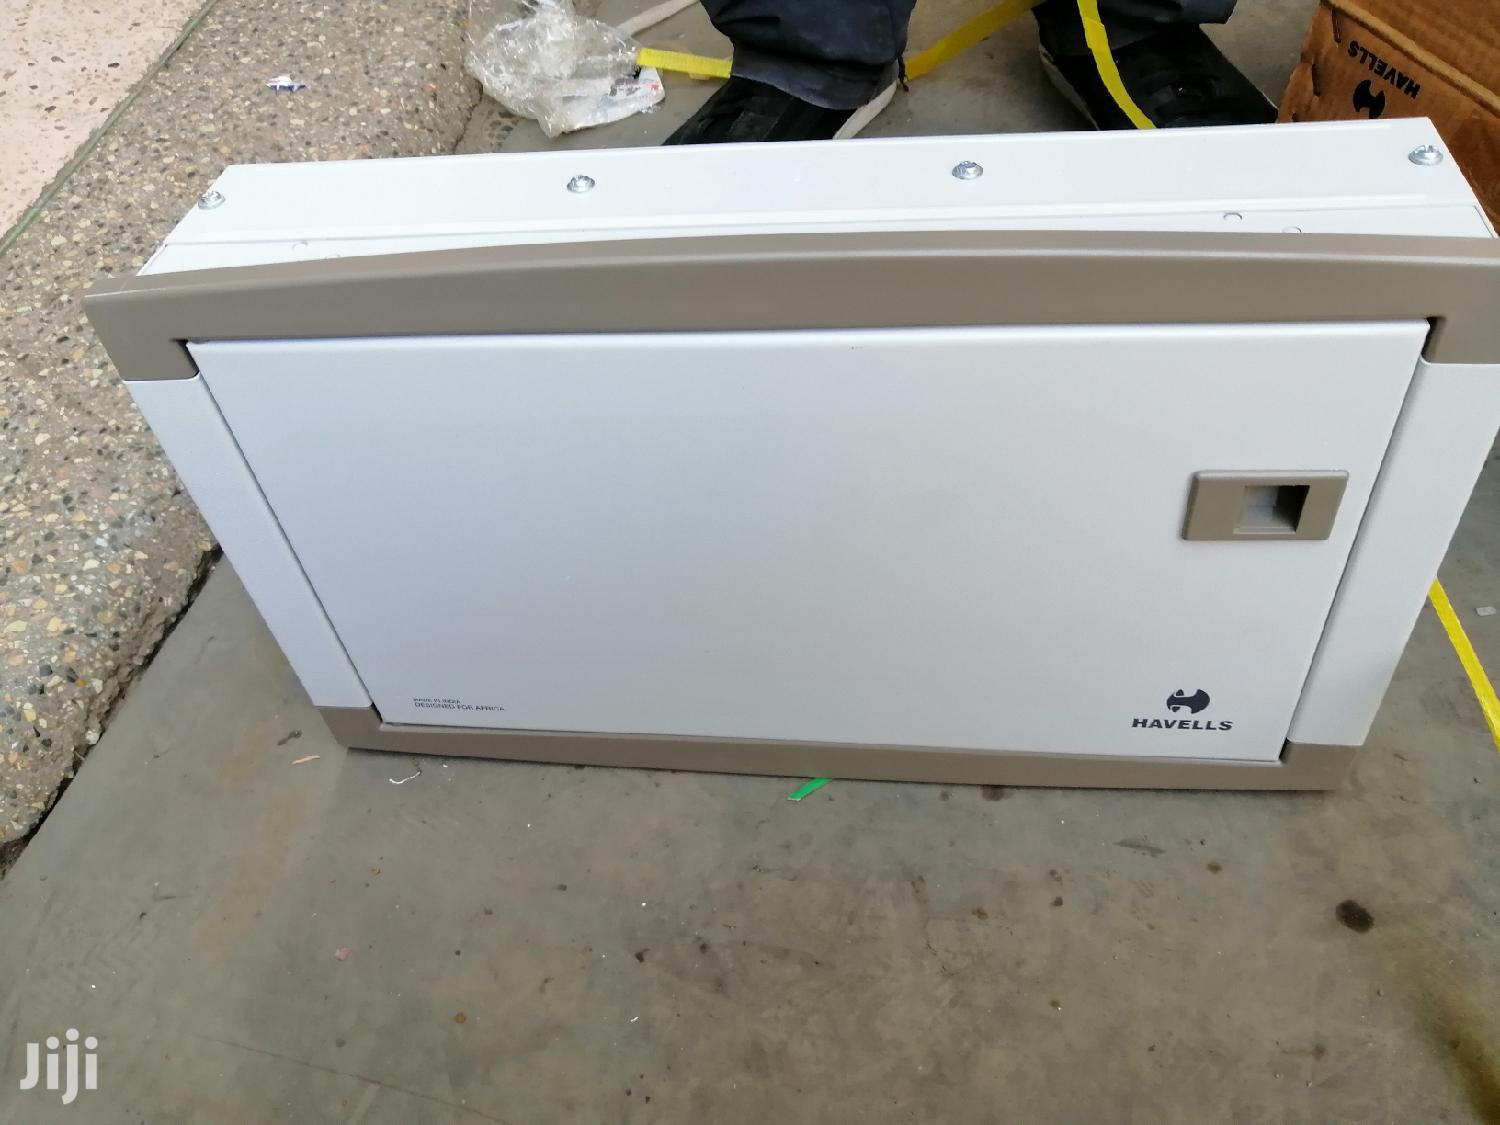 Harvells 12 Way 63A Single Phase Consumer/Distribution Unit